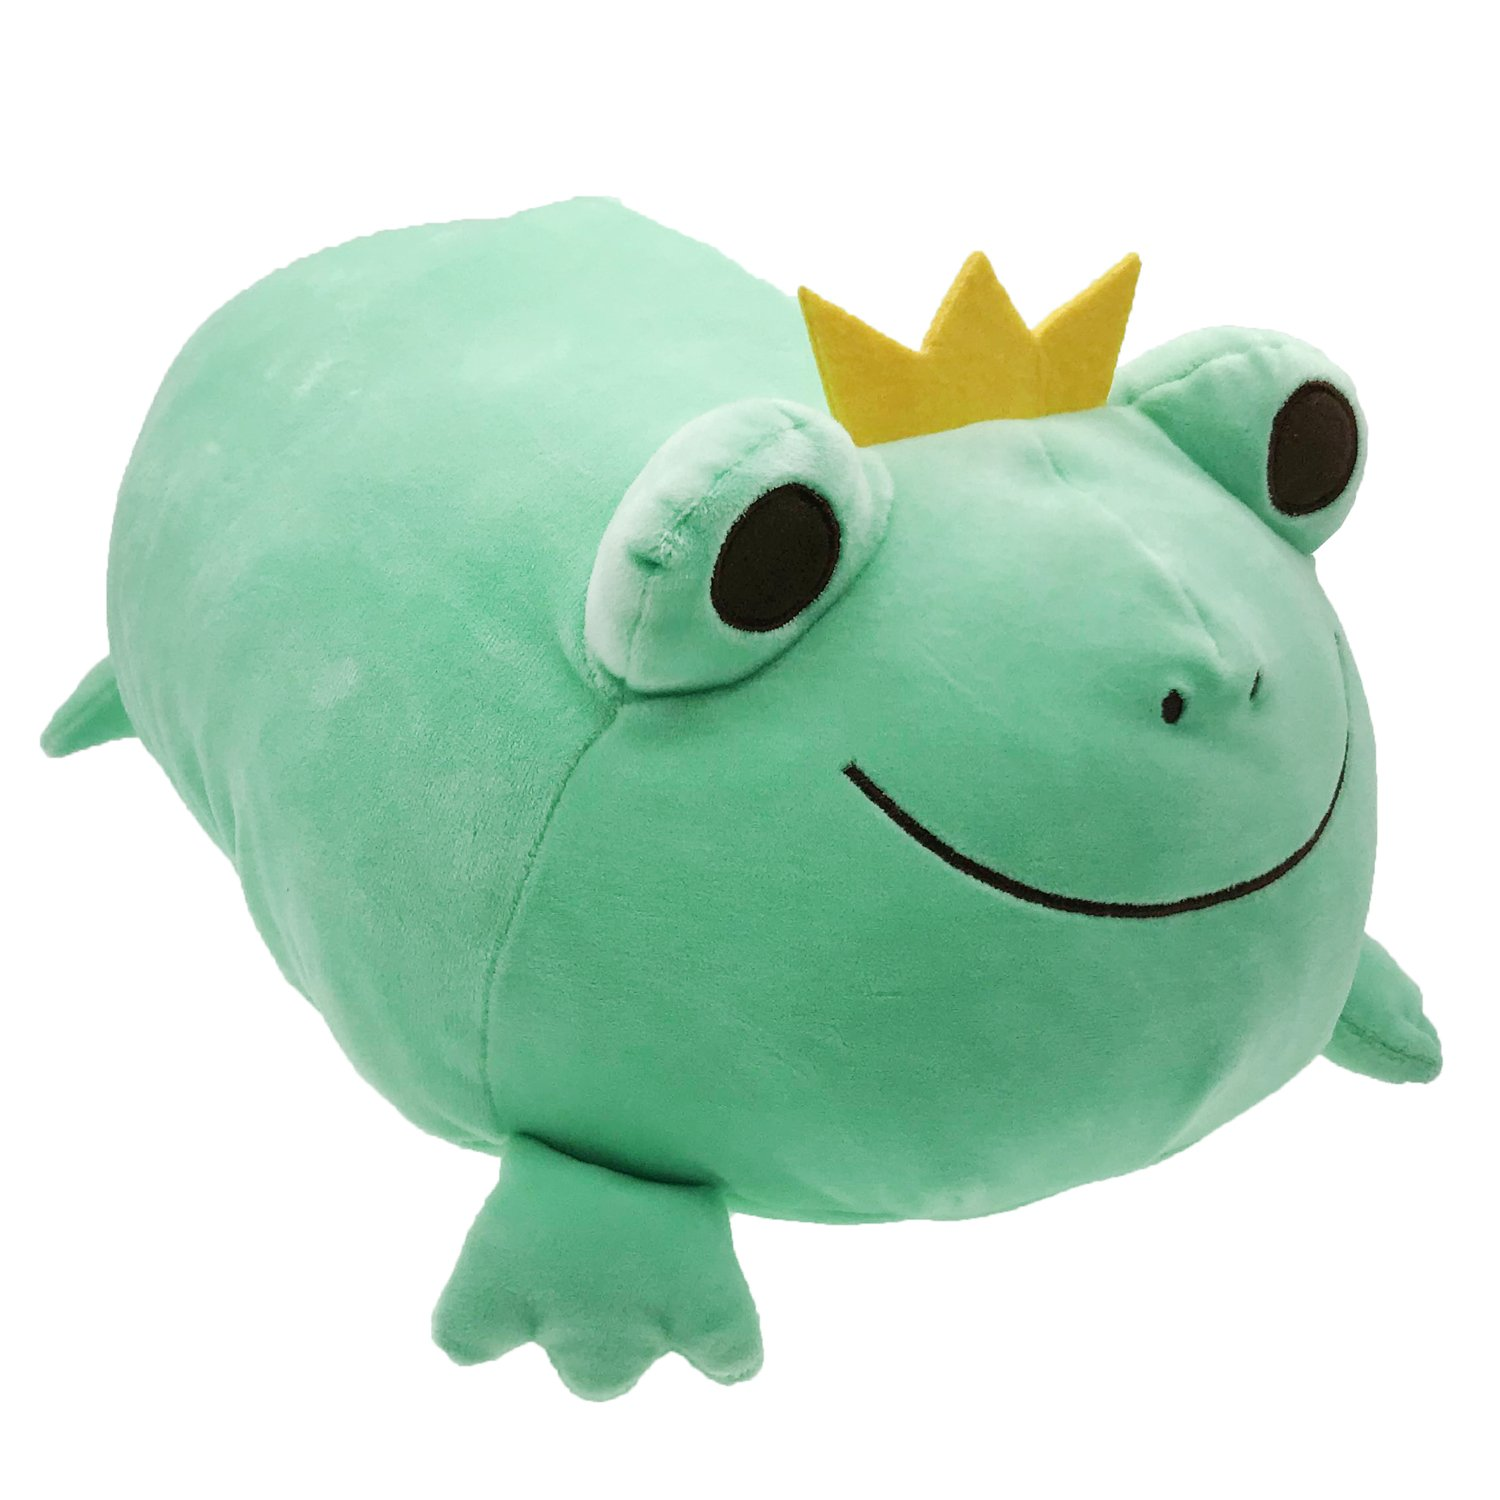 Frog Stuffed Animal Stretchy Frog Plush Pillow with Crown Cuddly Adorable Gift for Kids Creative Decoration 14 Inches Green